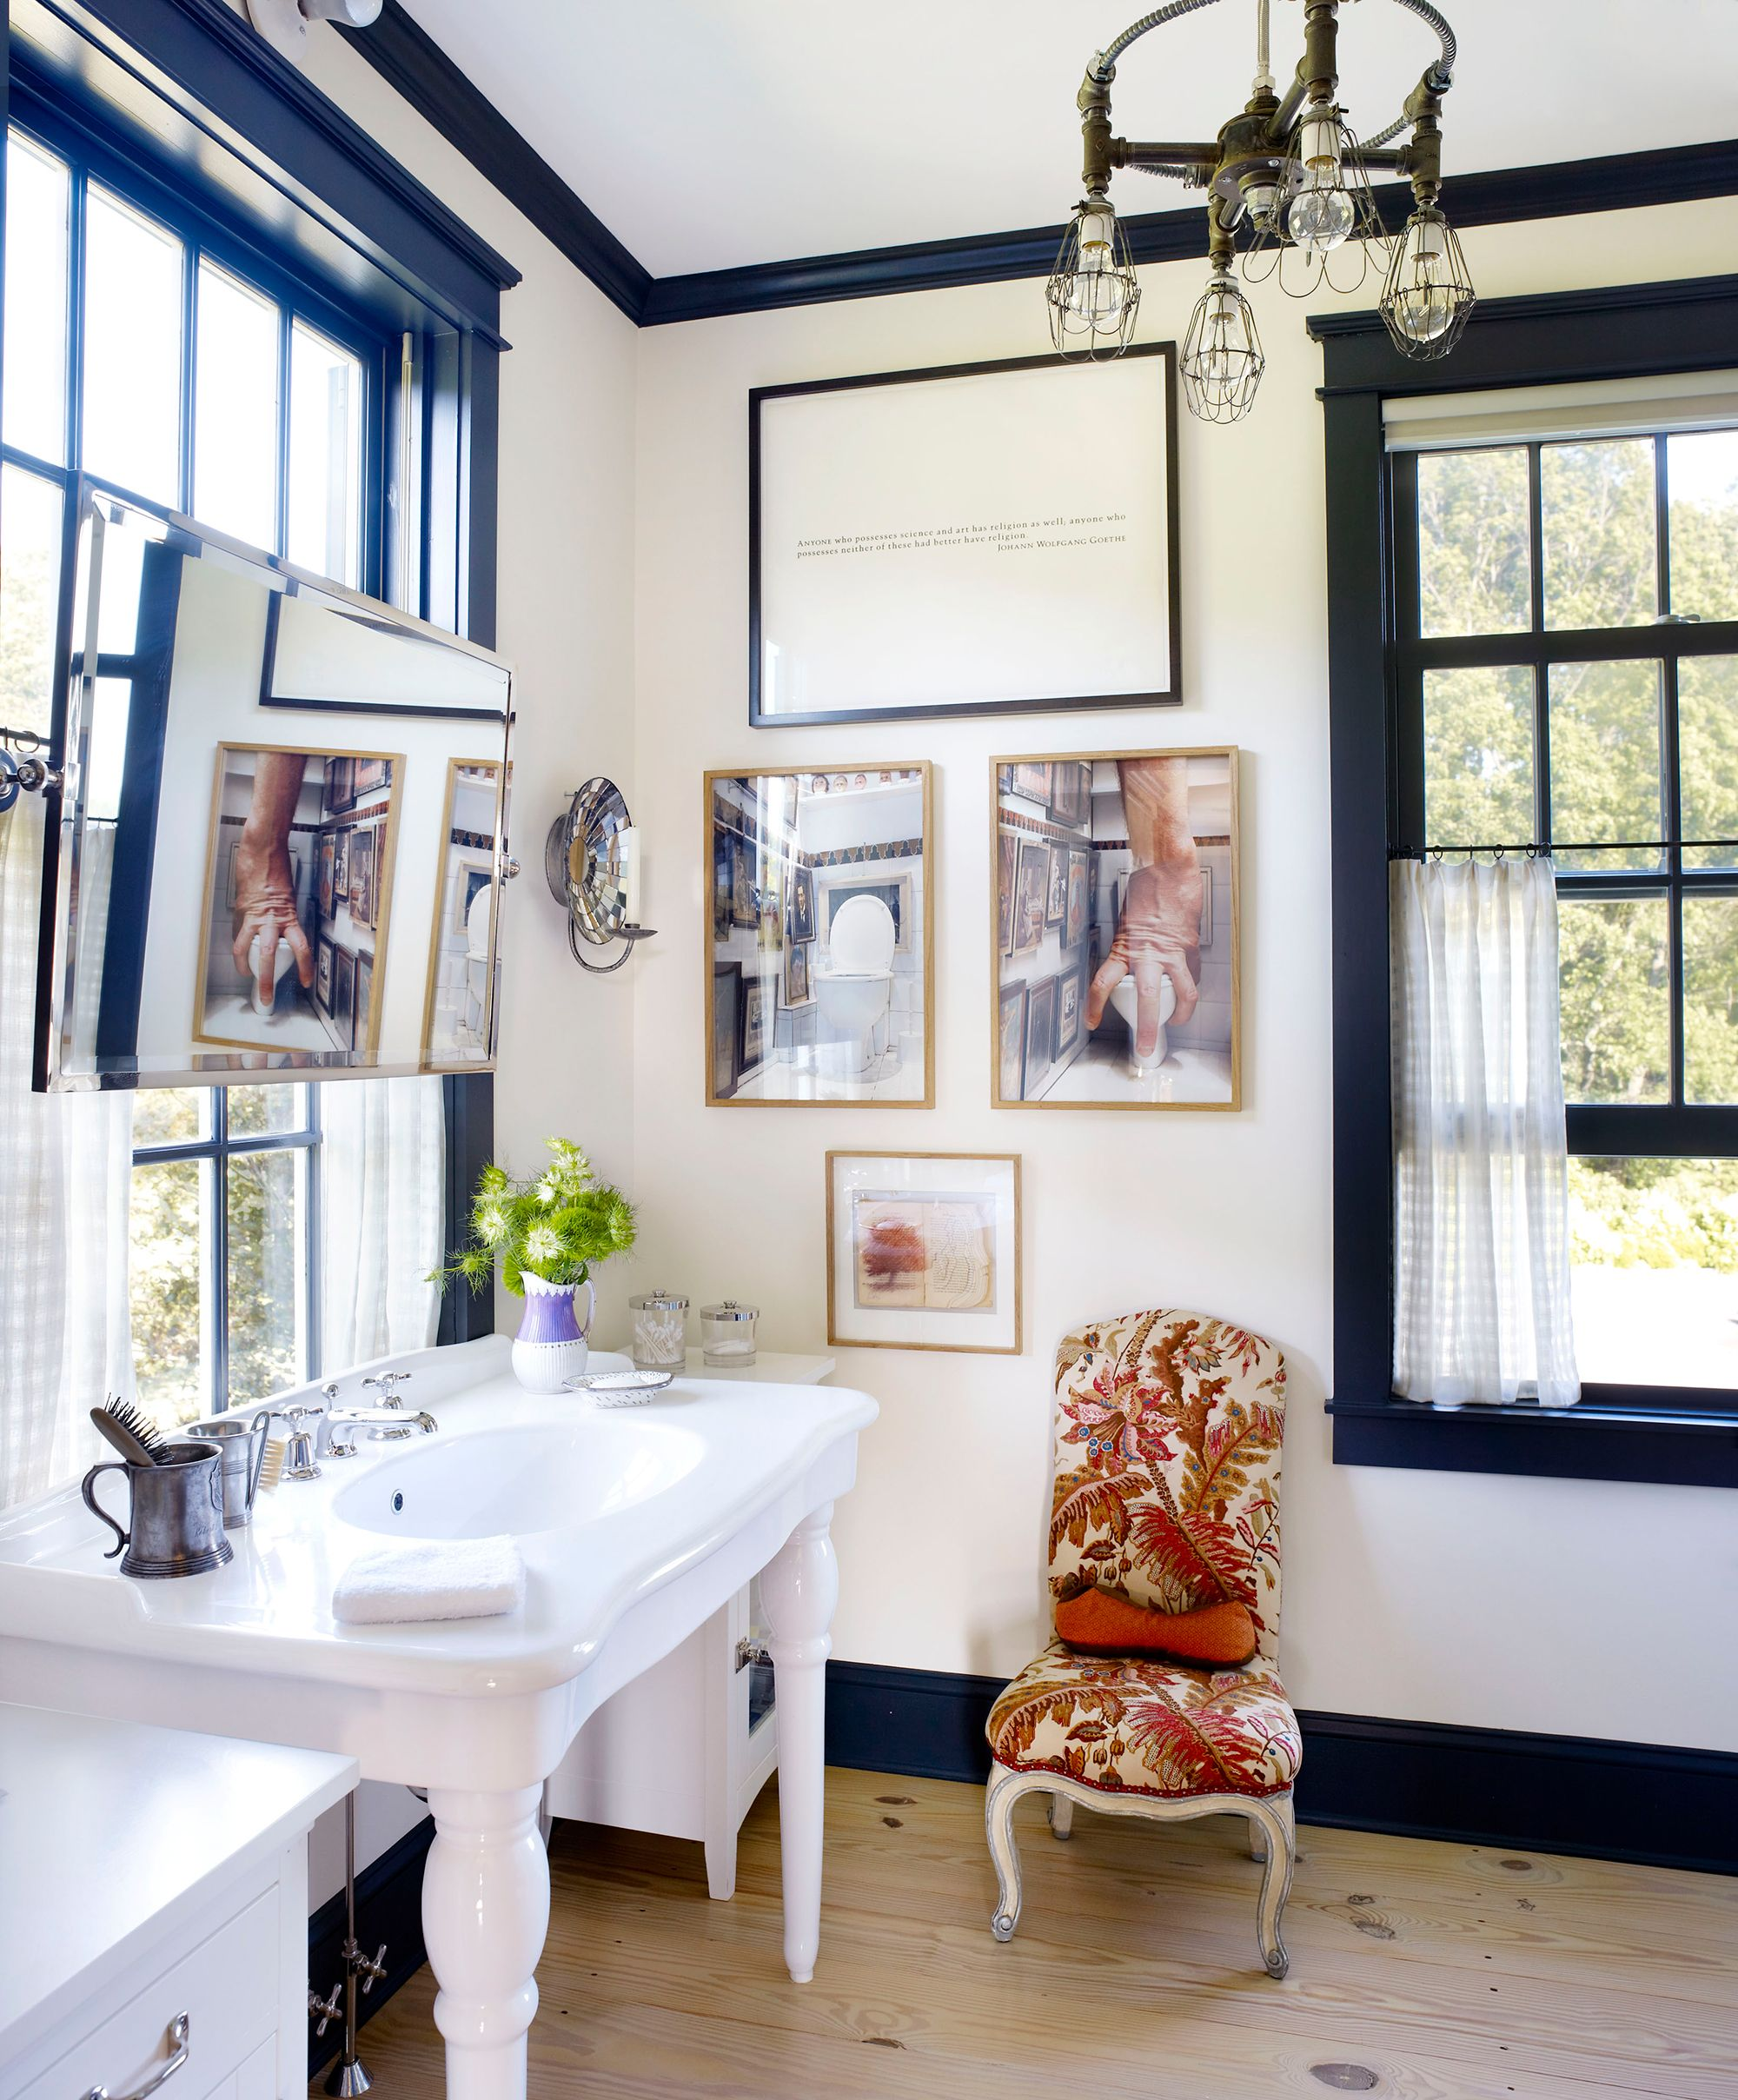 19 Best Window Treatment Ideas - Window Coverings, Curtains, & Blinds